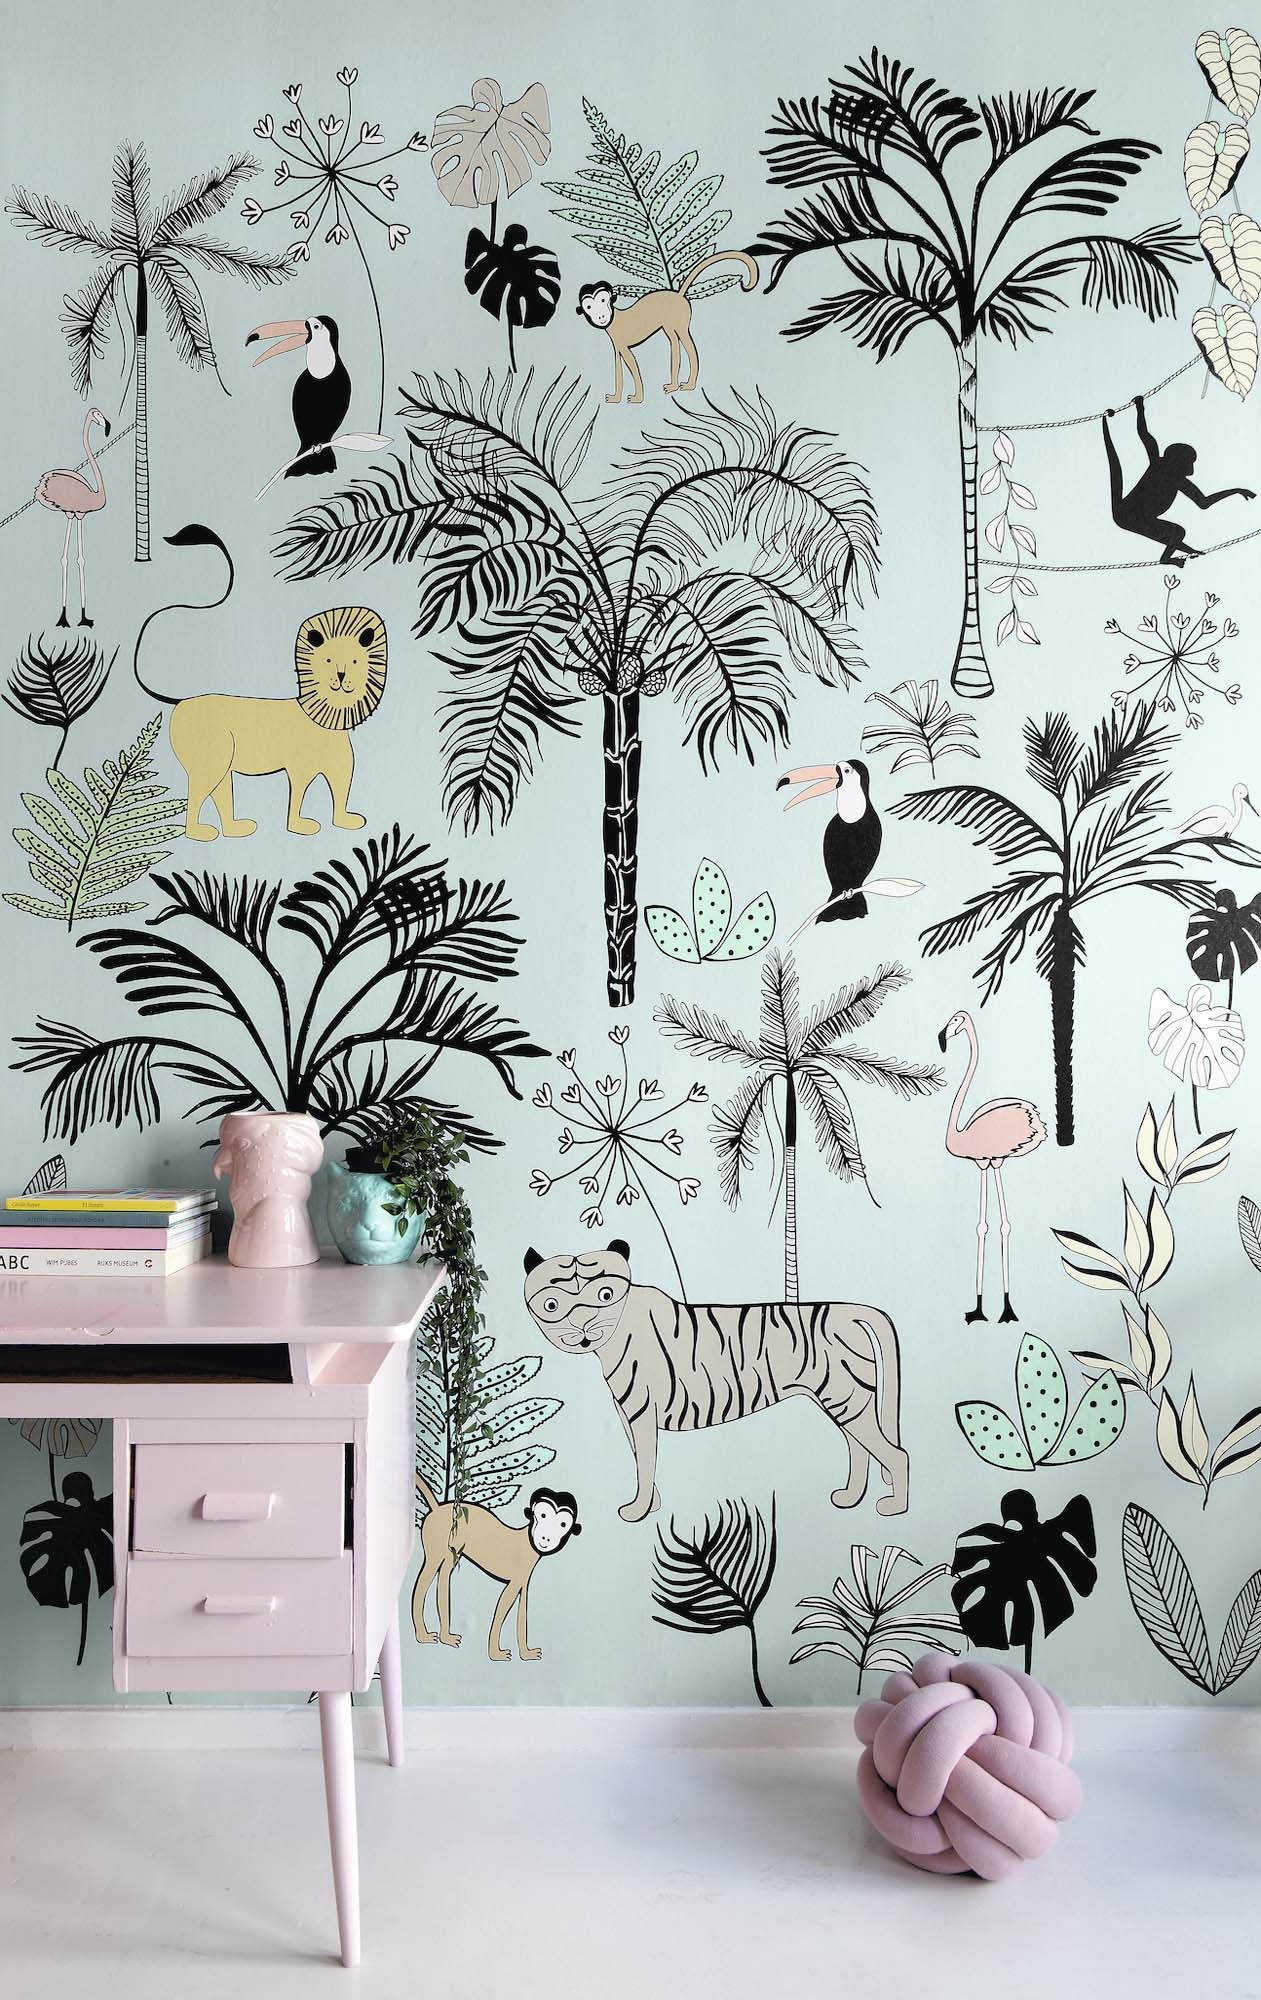 Safari Children's Wallpaper Mural in Blue/Green, Black & White